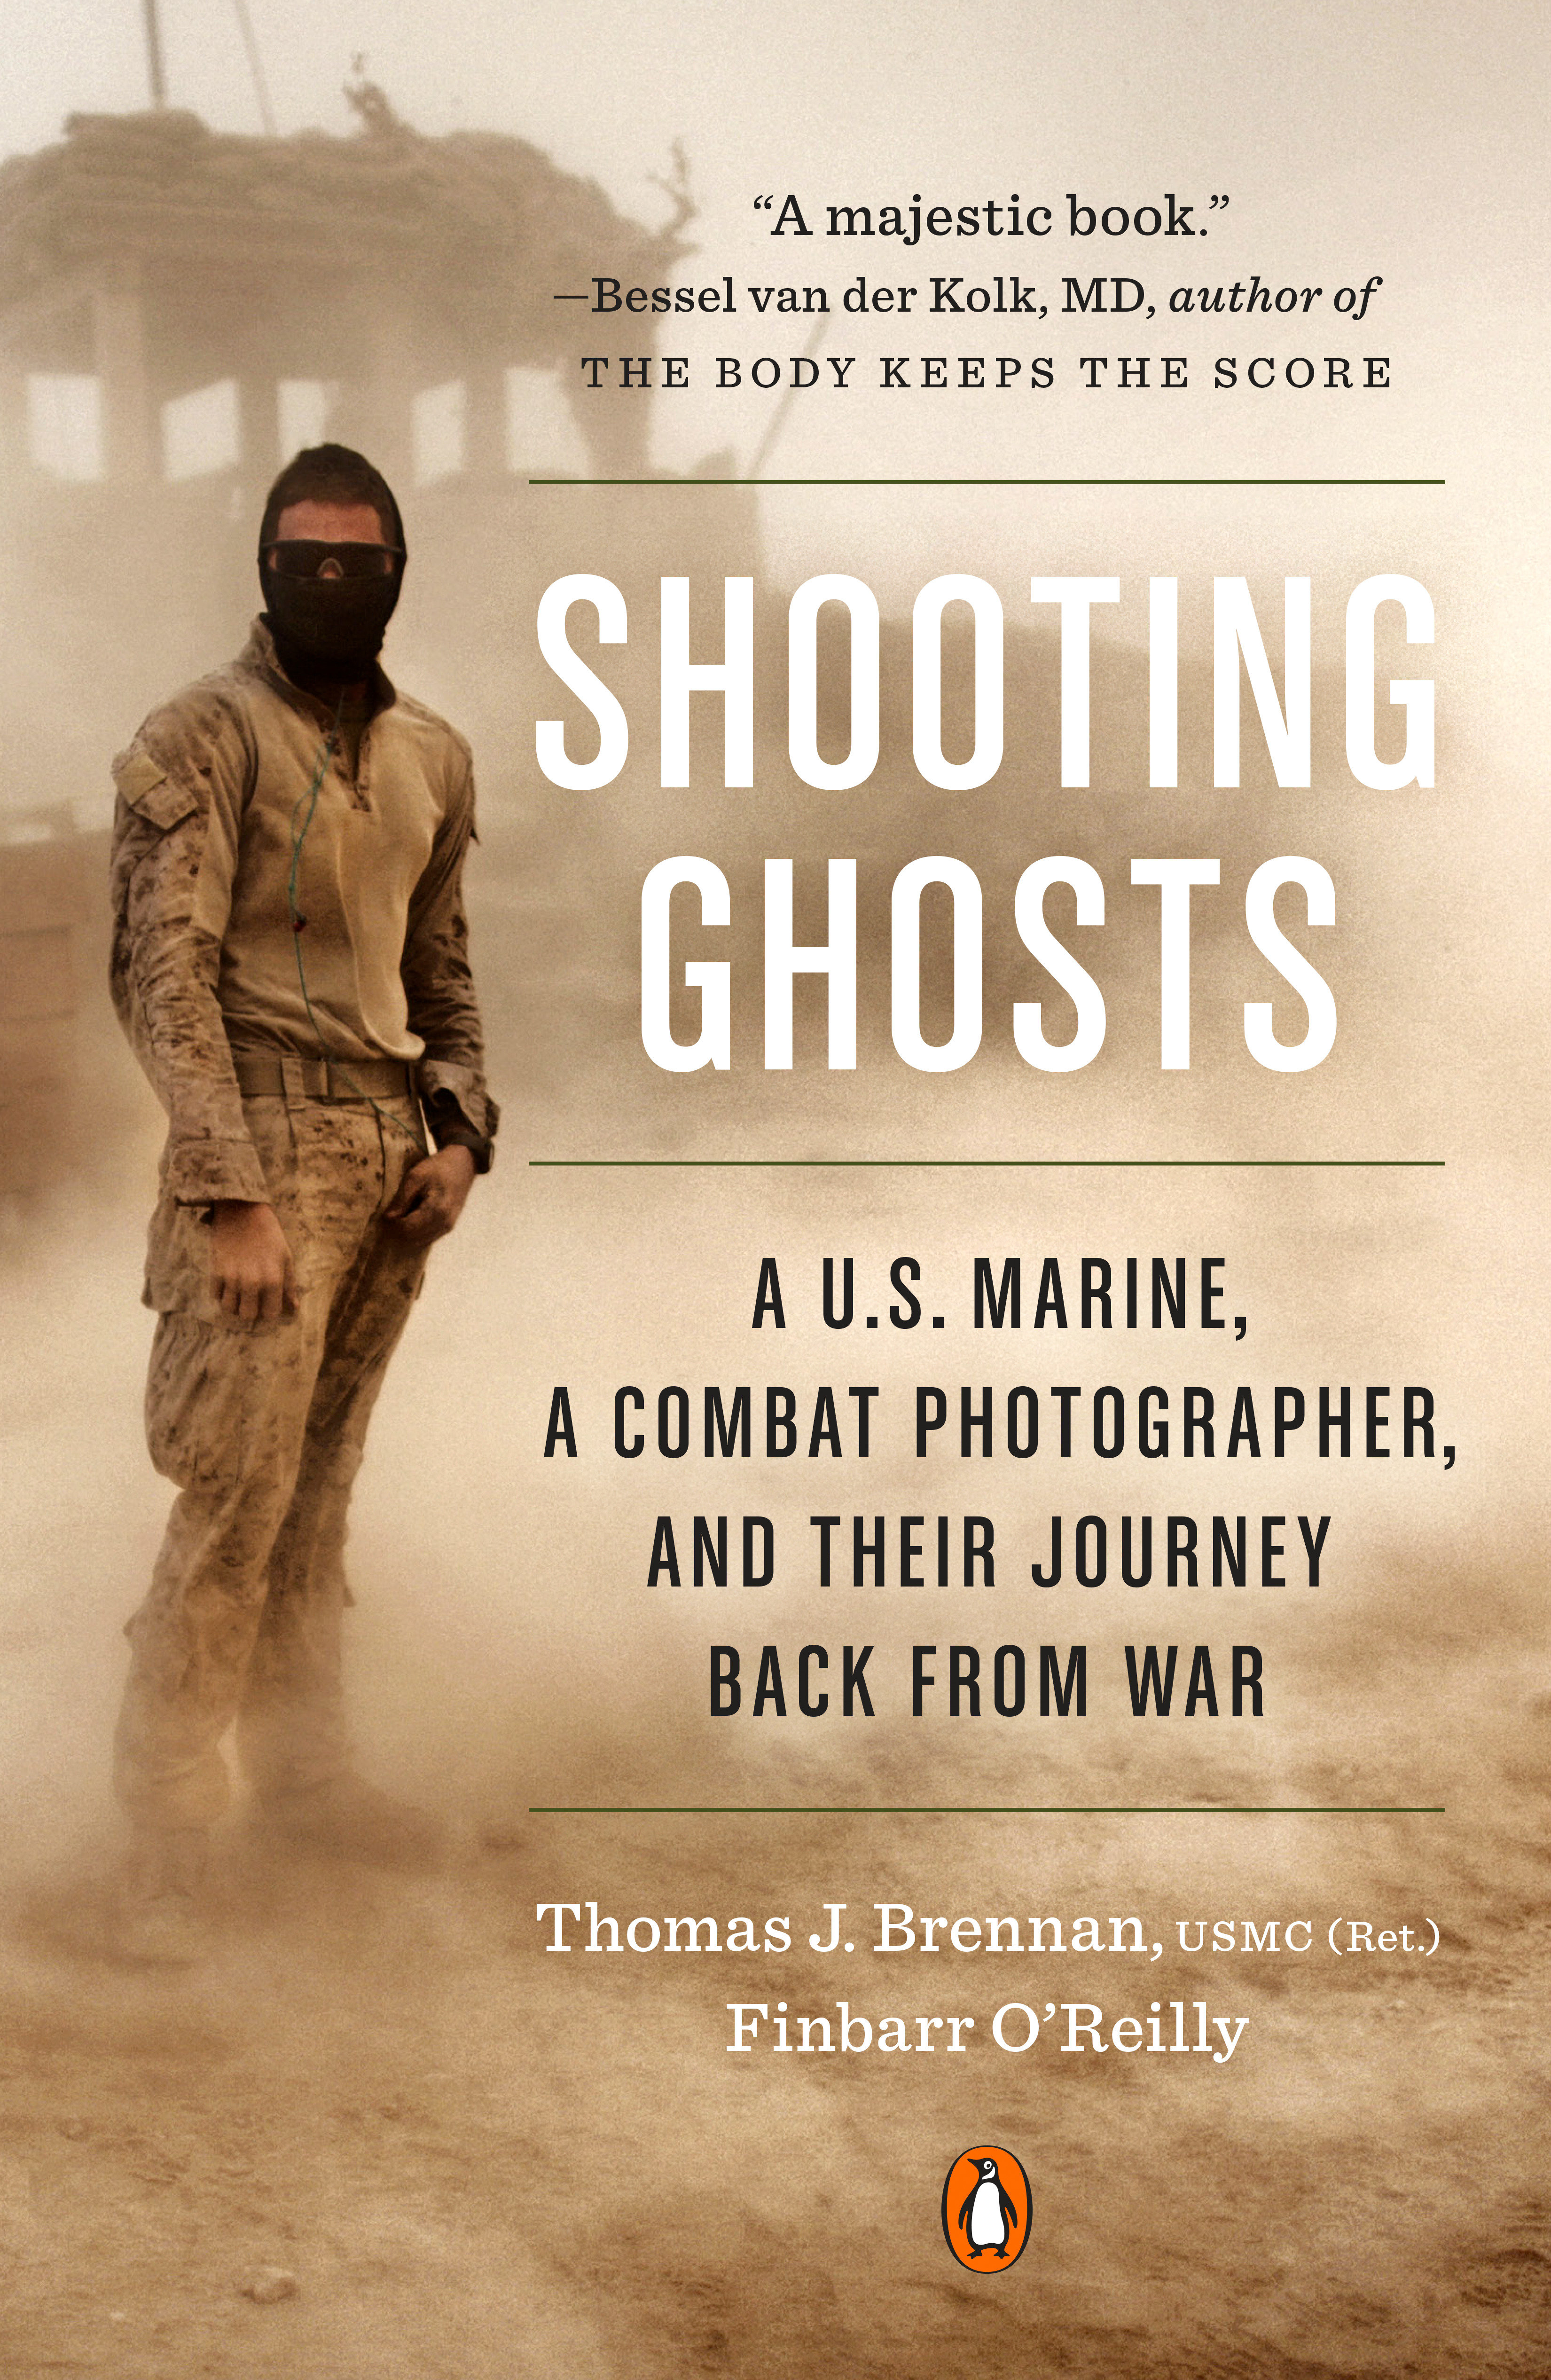 Shooting ghosts [electronic resource (downloadable eBook)] : a U.S. Marine, a combat photographer, and their journey back from war